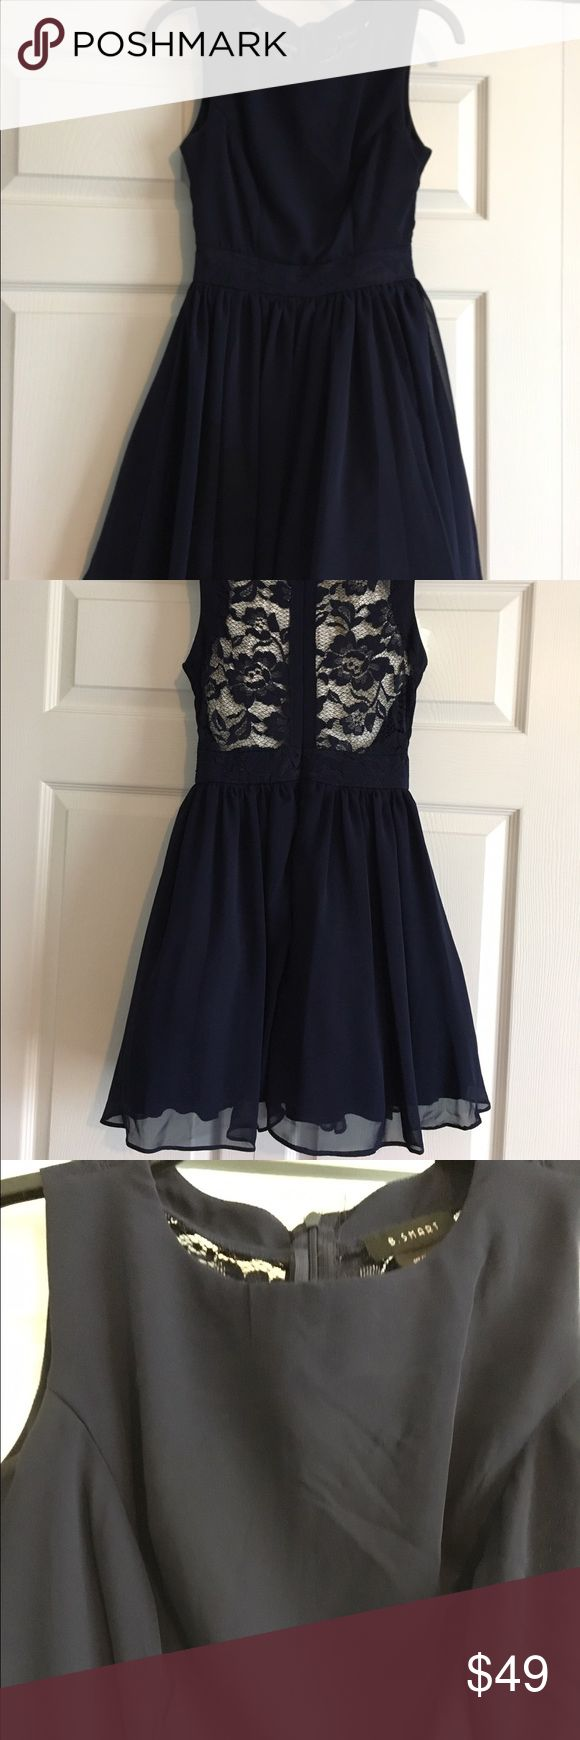 B. Smart short sleeveless dress size 3 navy blue B. Smart dress navy blue sleeveless - worn once - lace back shown with white underneath to show how it would look.  Short hemline which does flare with underlying of mesh.  Front is solid - not shear like back. Size 3 B. Smart Dresses Mini